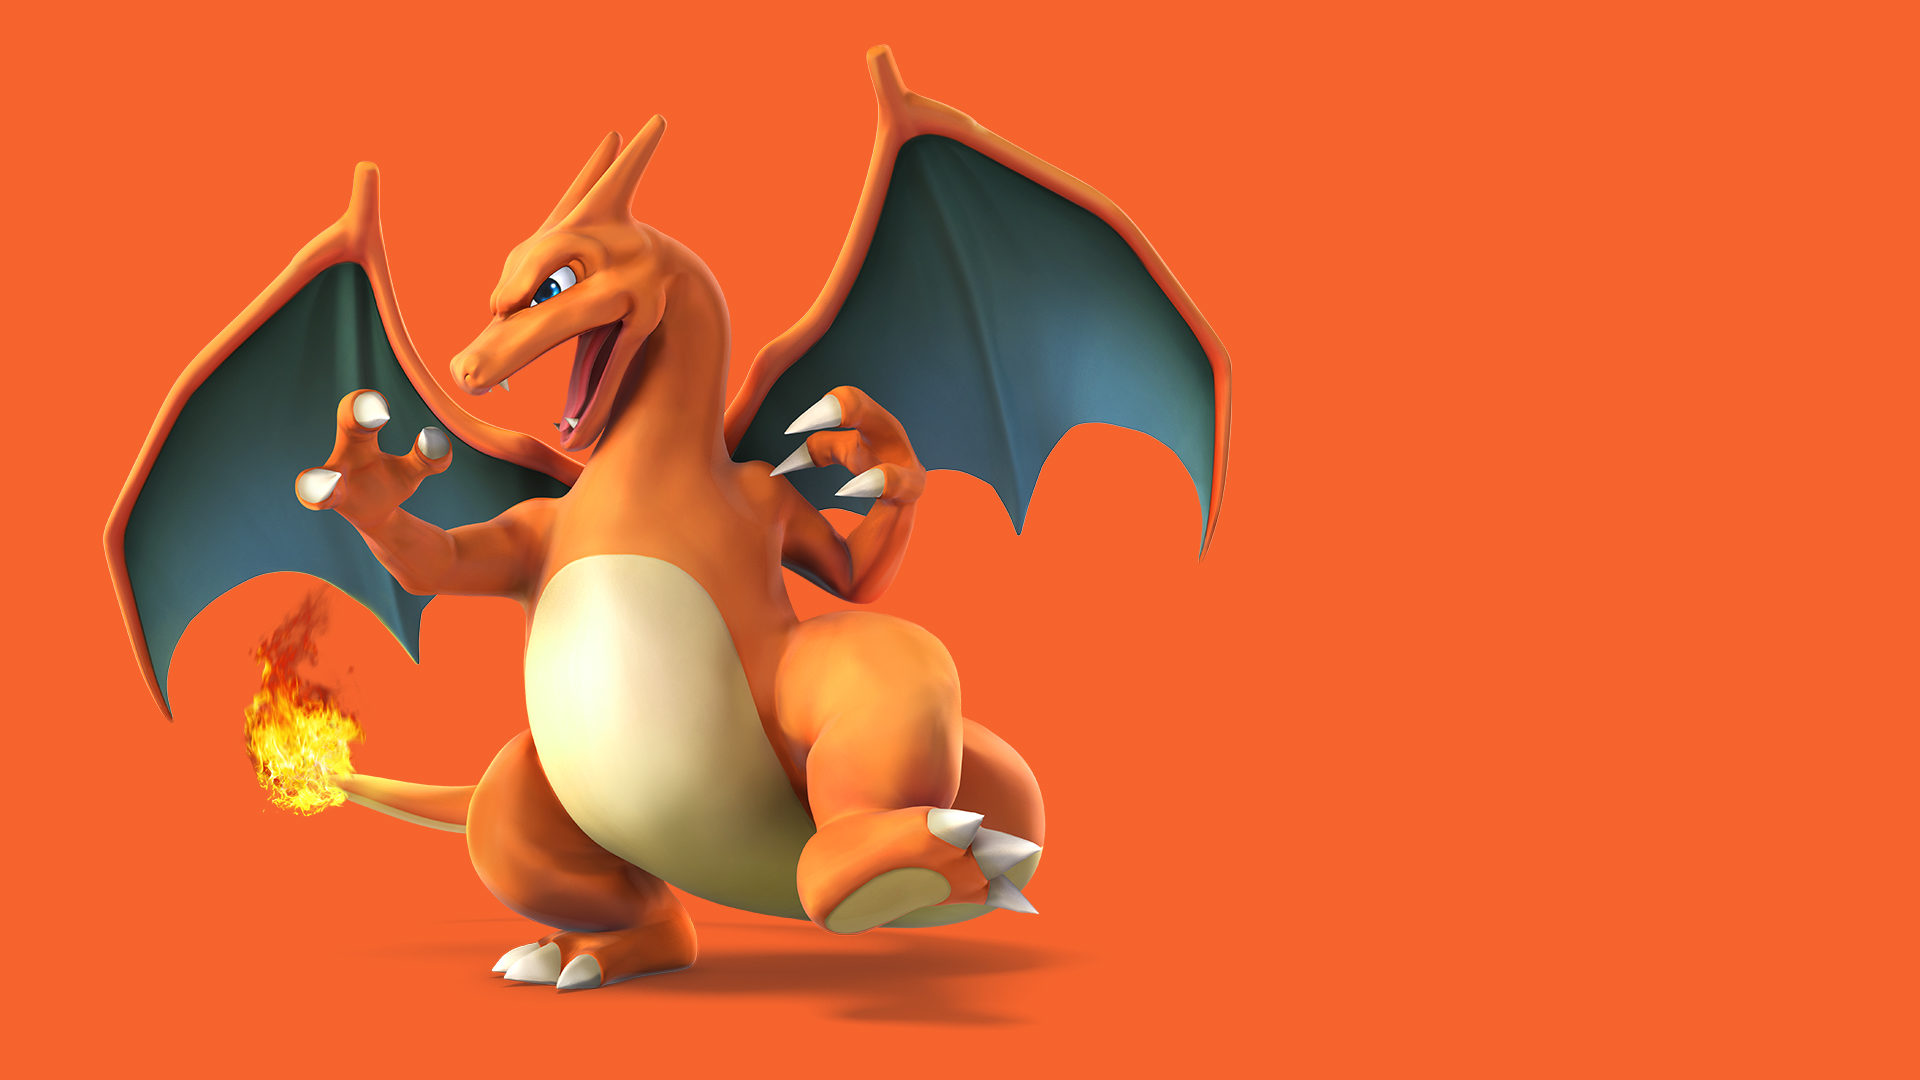 charizard wallpaper hd full hd pictures